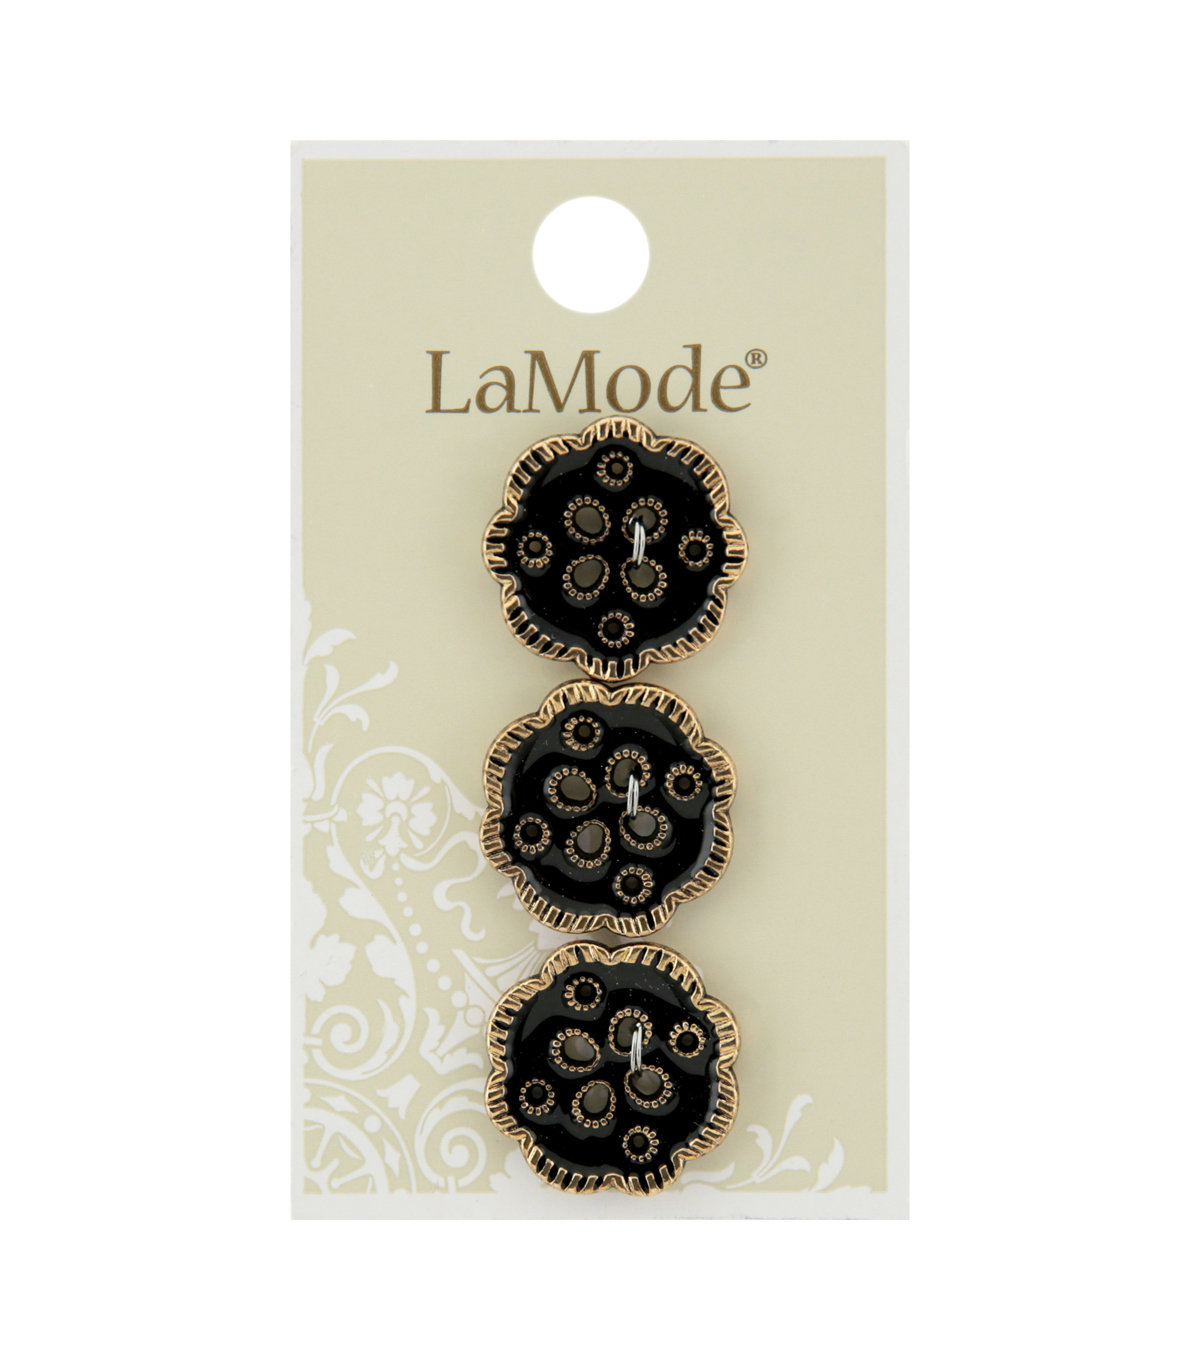 La Mode 3 pk 20 mm 4 Hole Buttons-Black & Gold